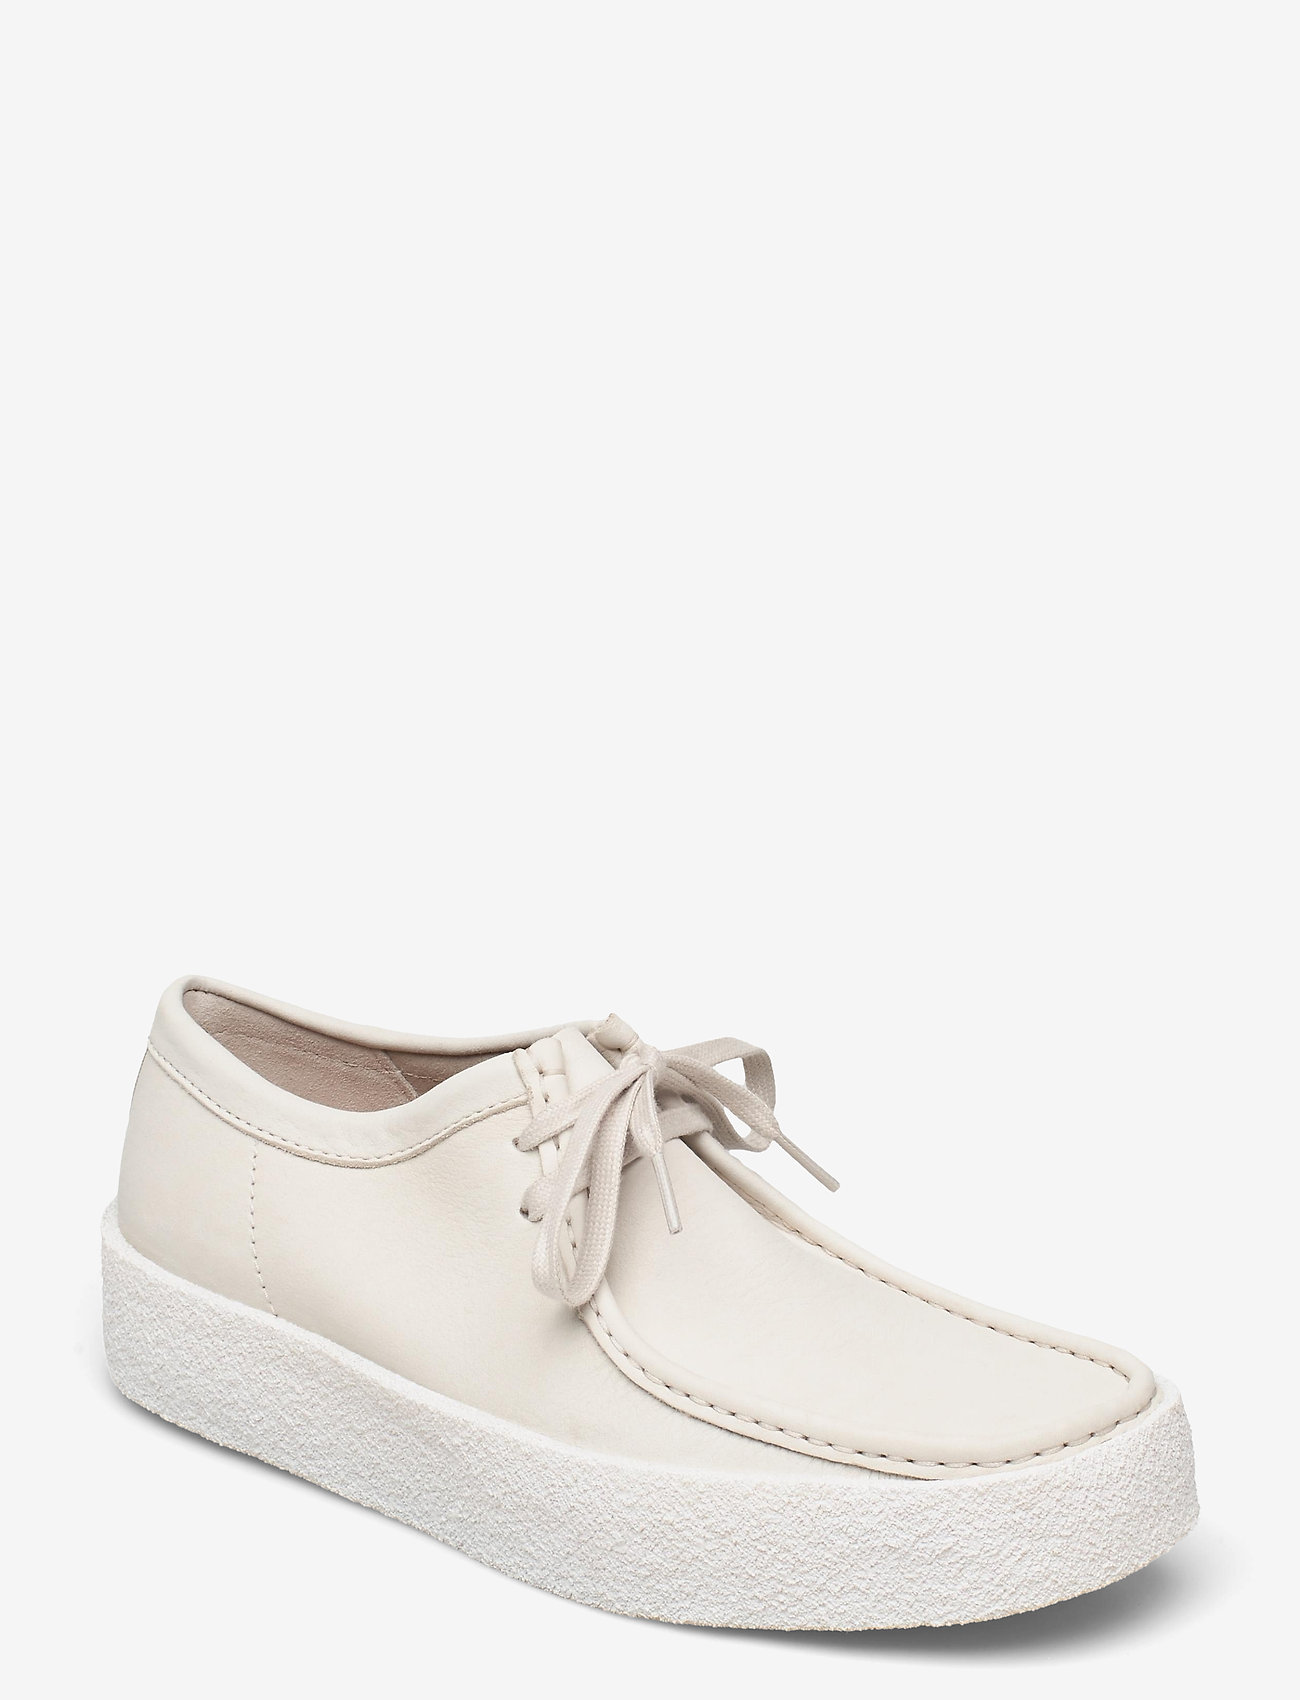 Clarks Originals - Wallabee Cup - skor - white nubuck - 0